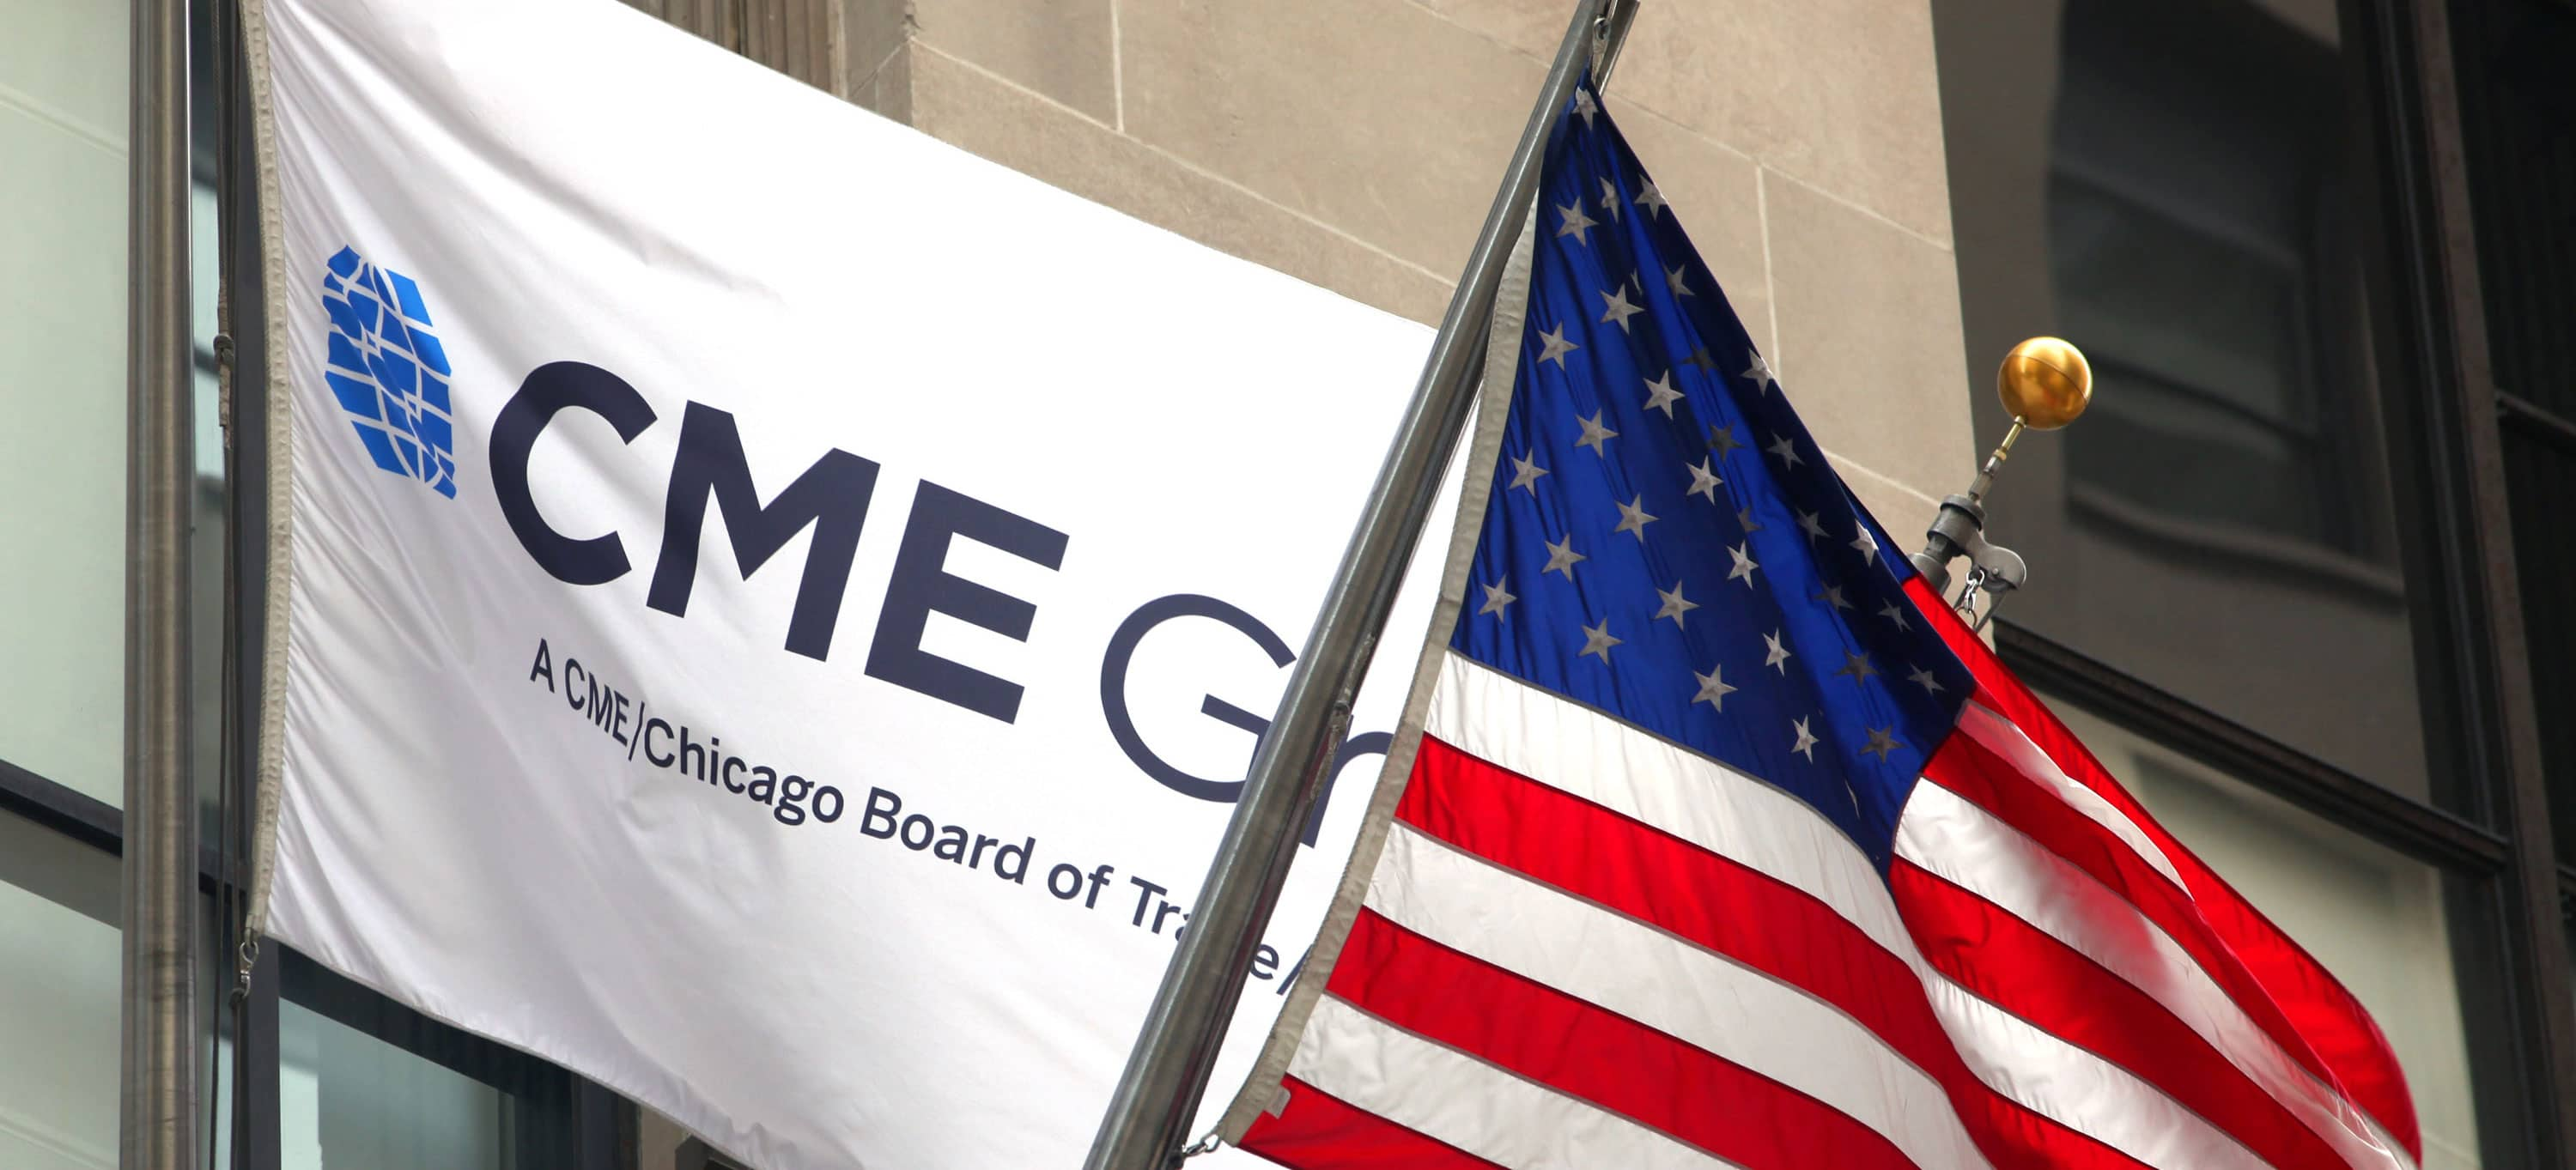 CME Group and Korea Financial Investment Association Sign Agreement